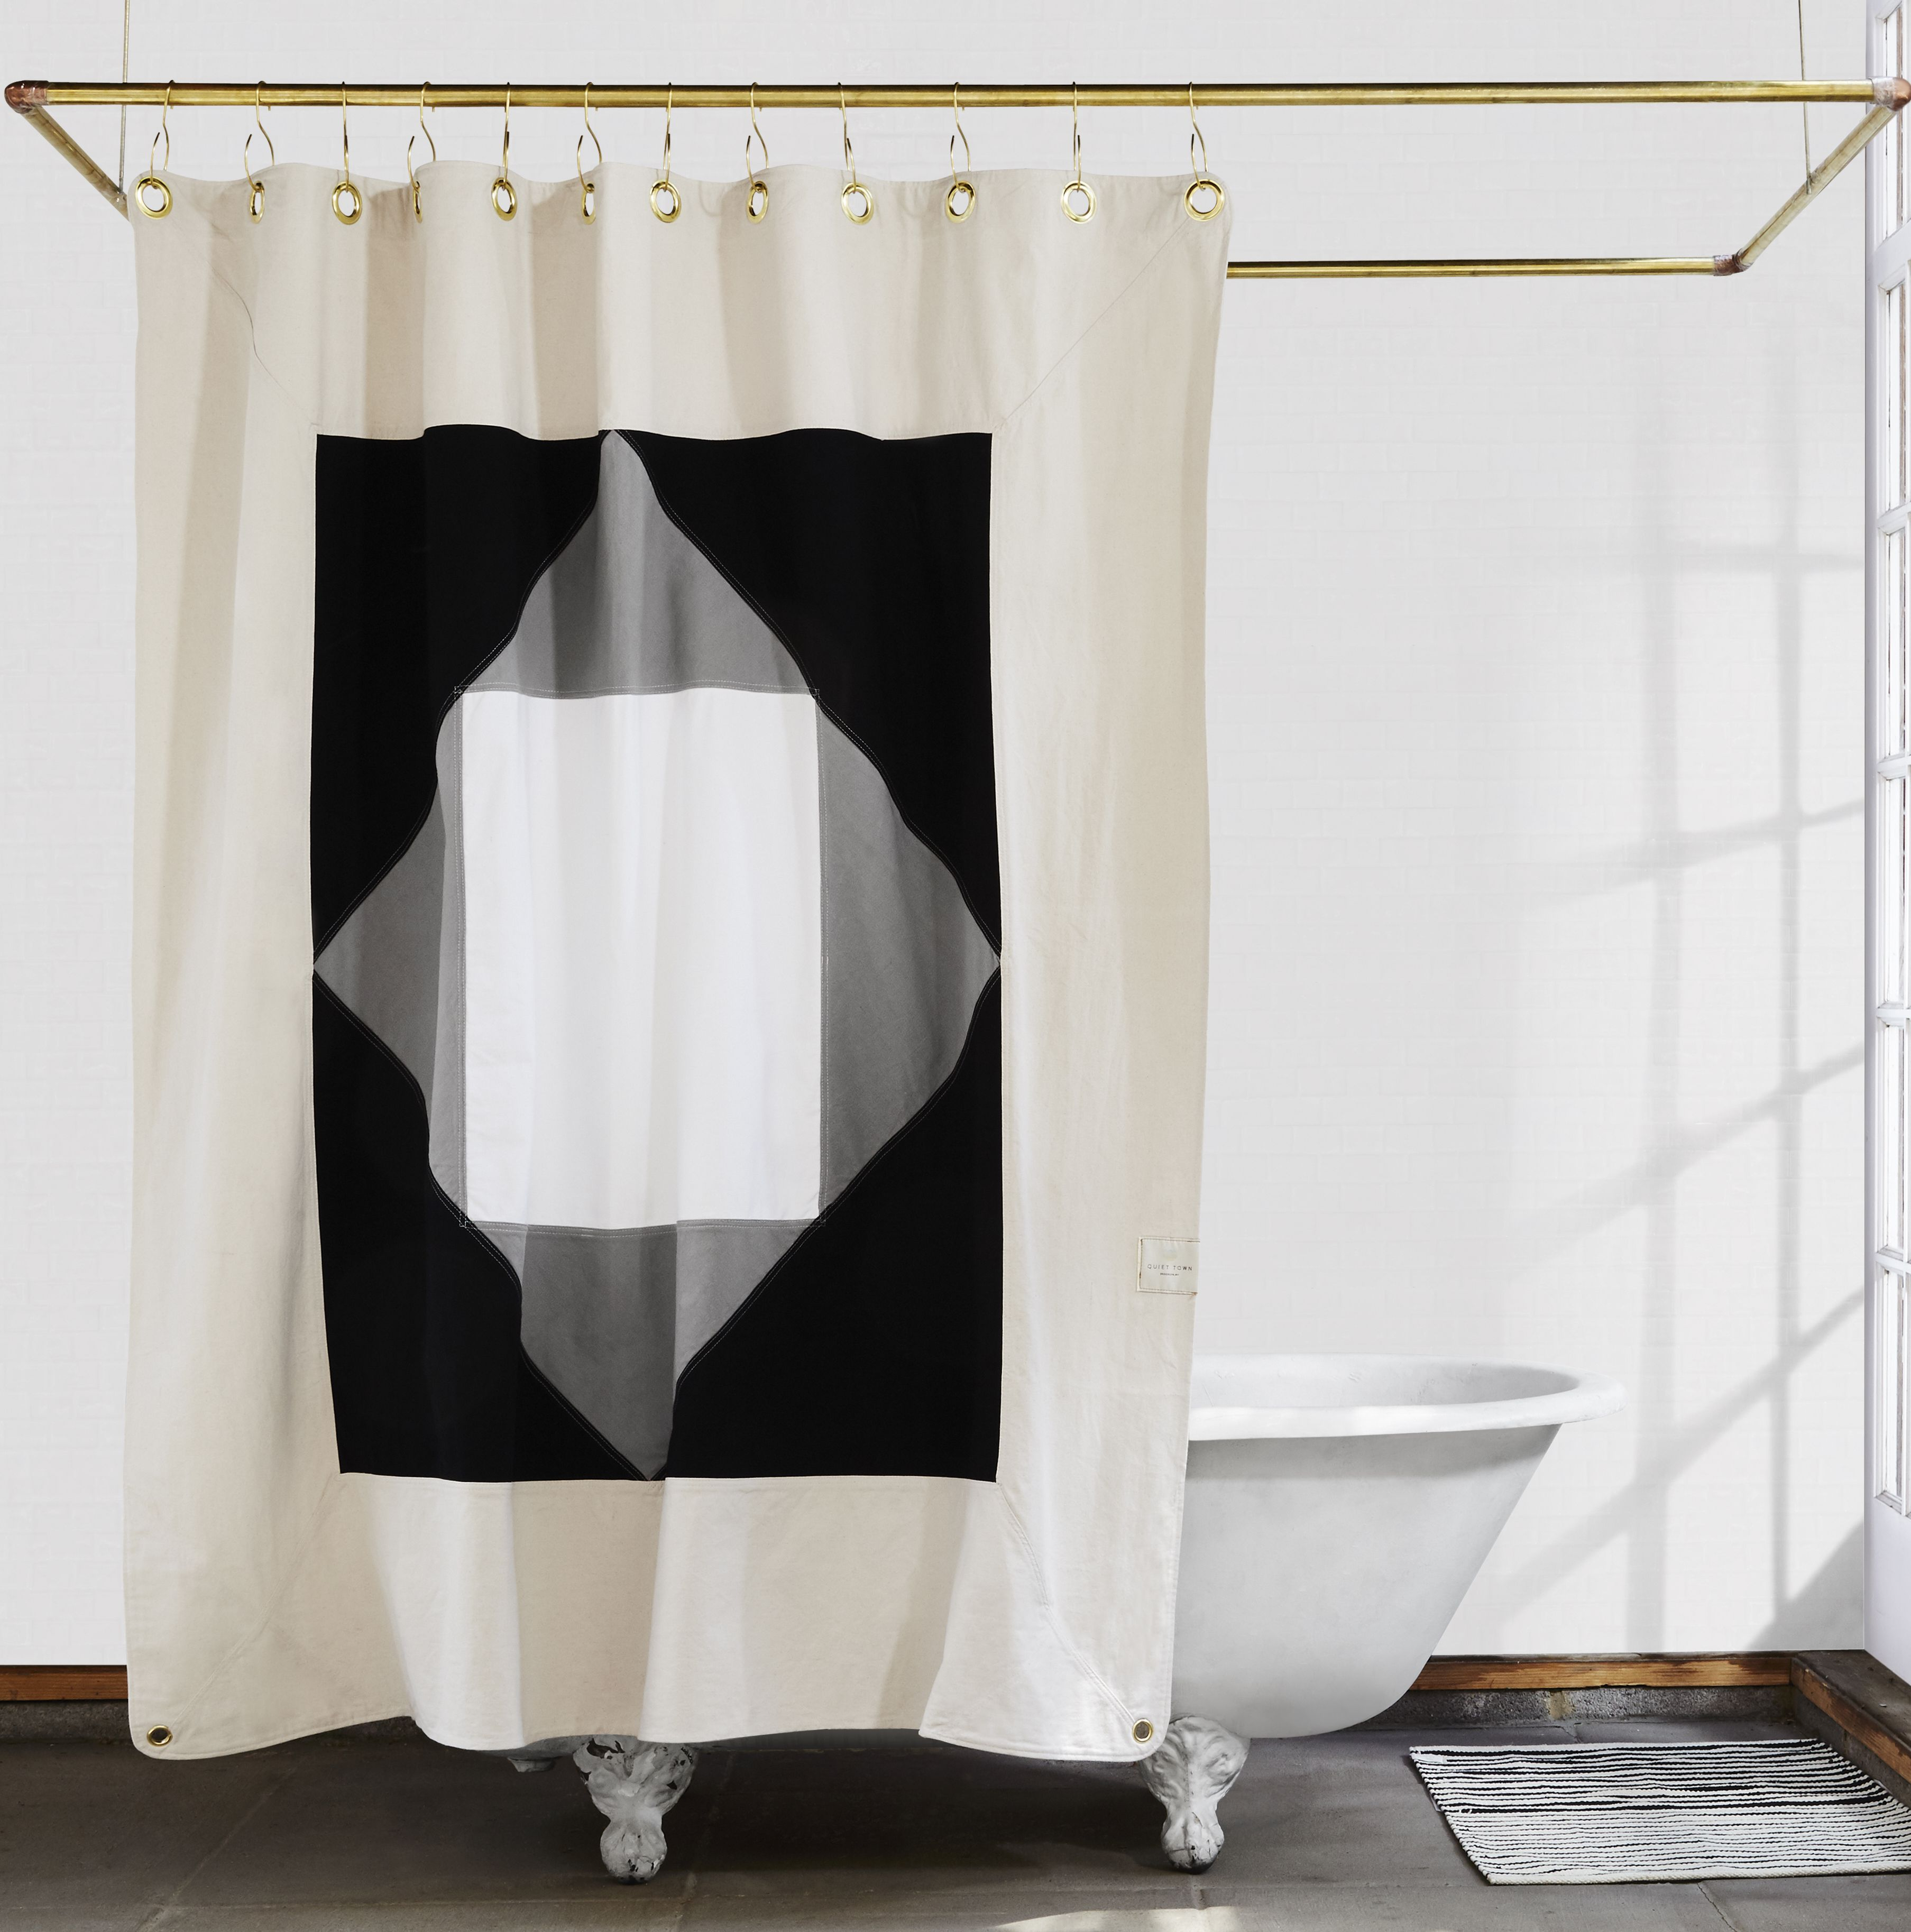 Statement Shower Curtains From Quiet Town Plus Glamorous Hooks Elegant Shower Curtains Designer Shower Curtains Curtains